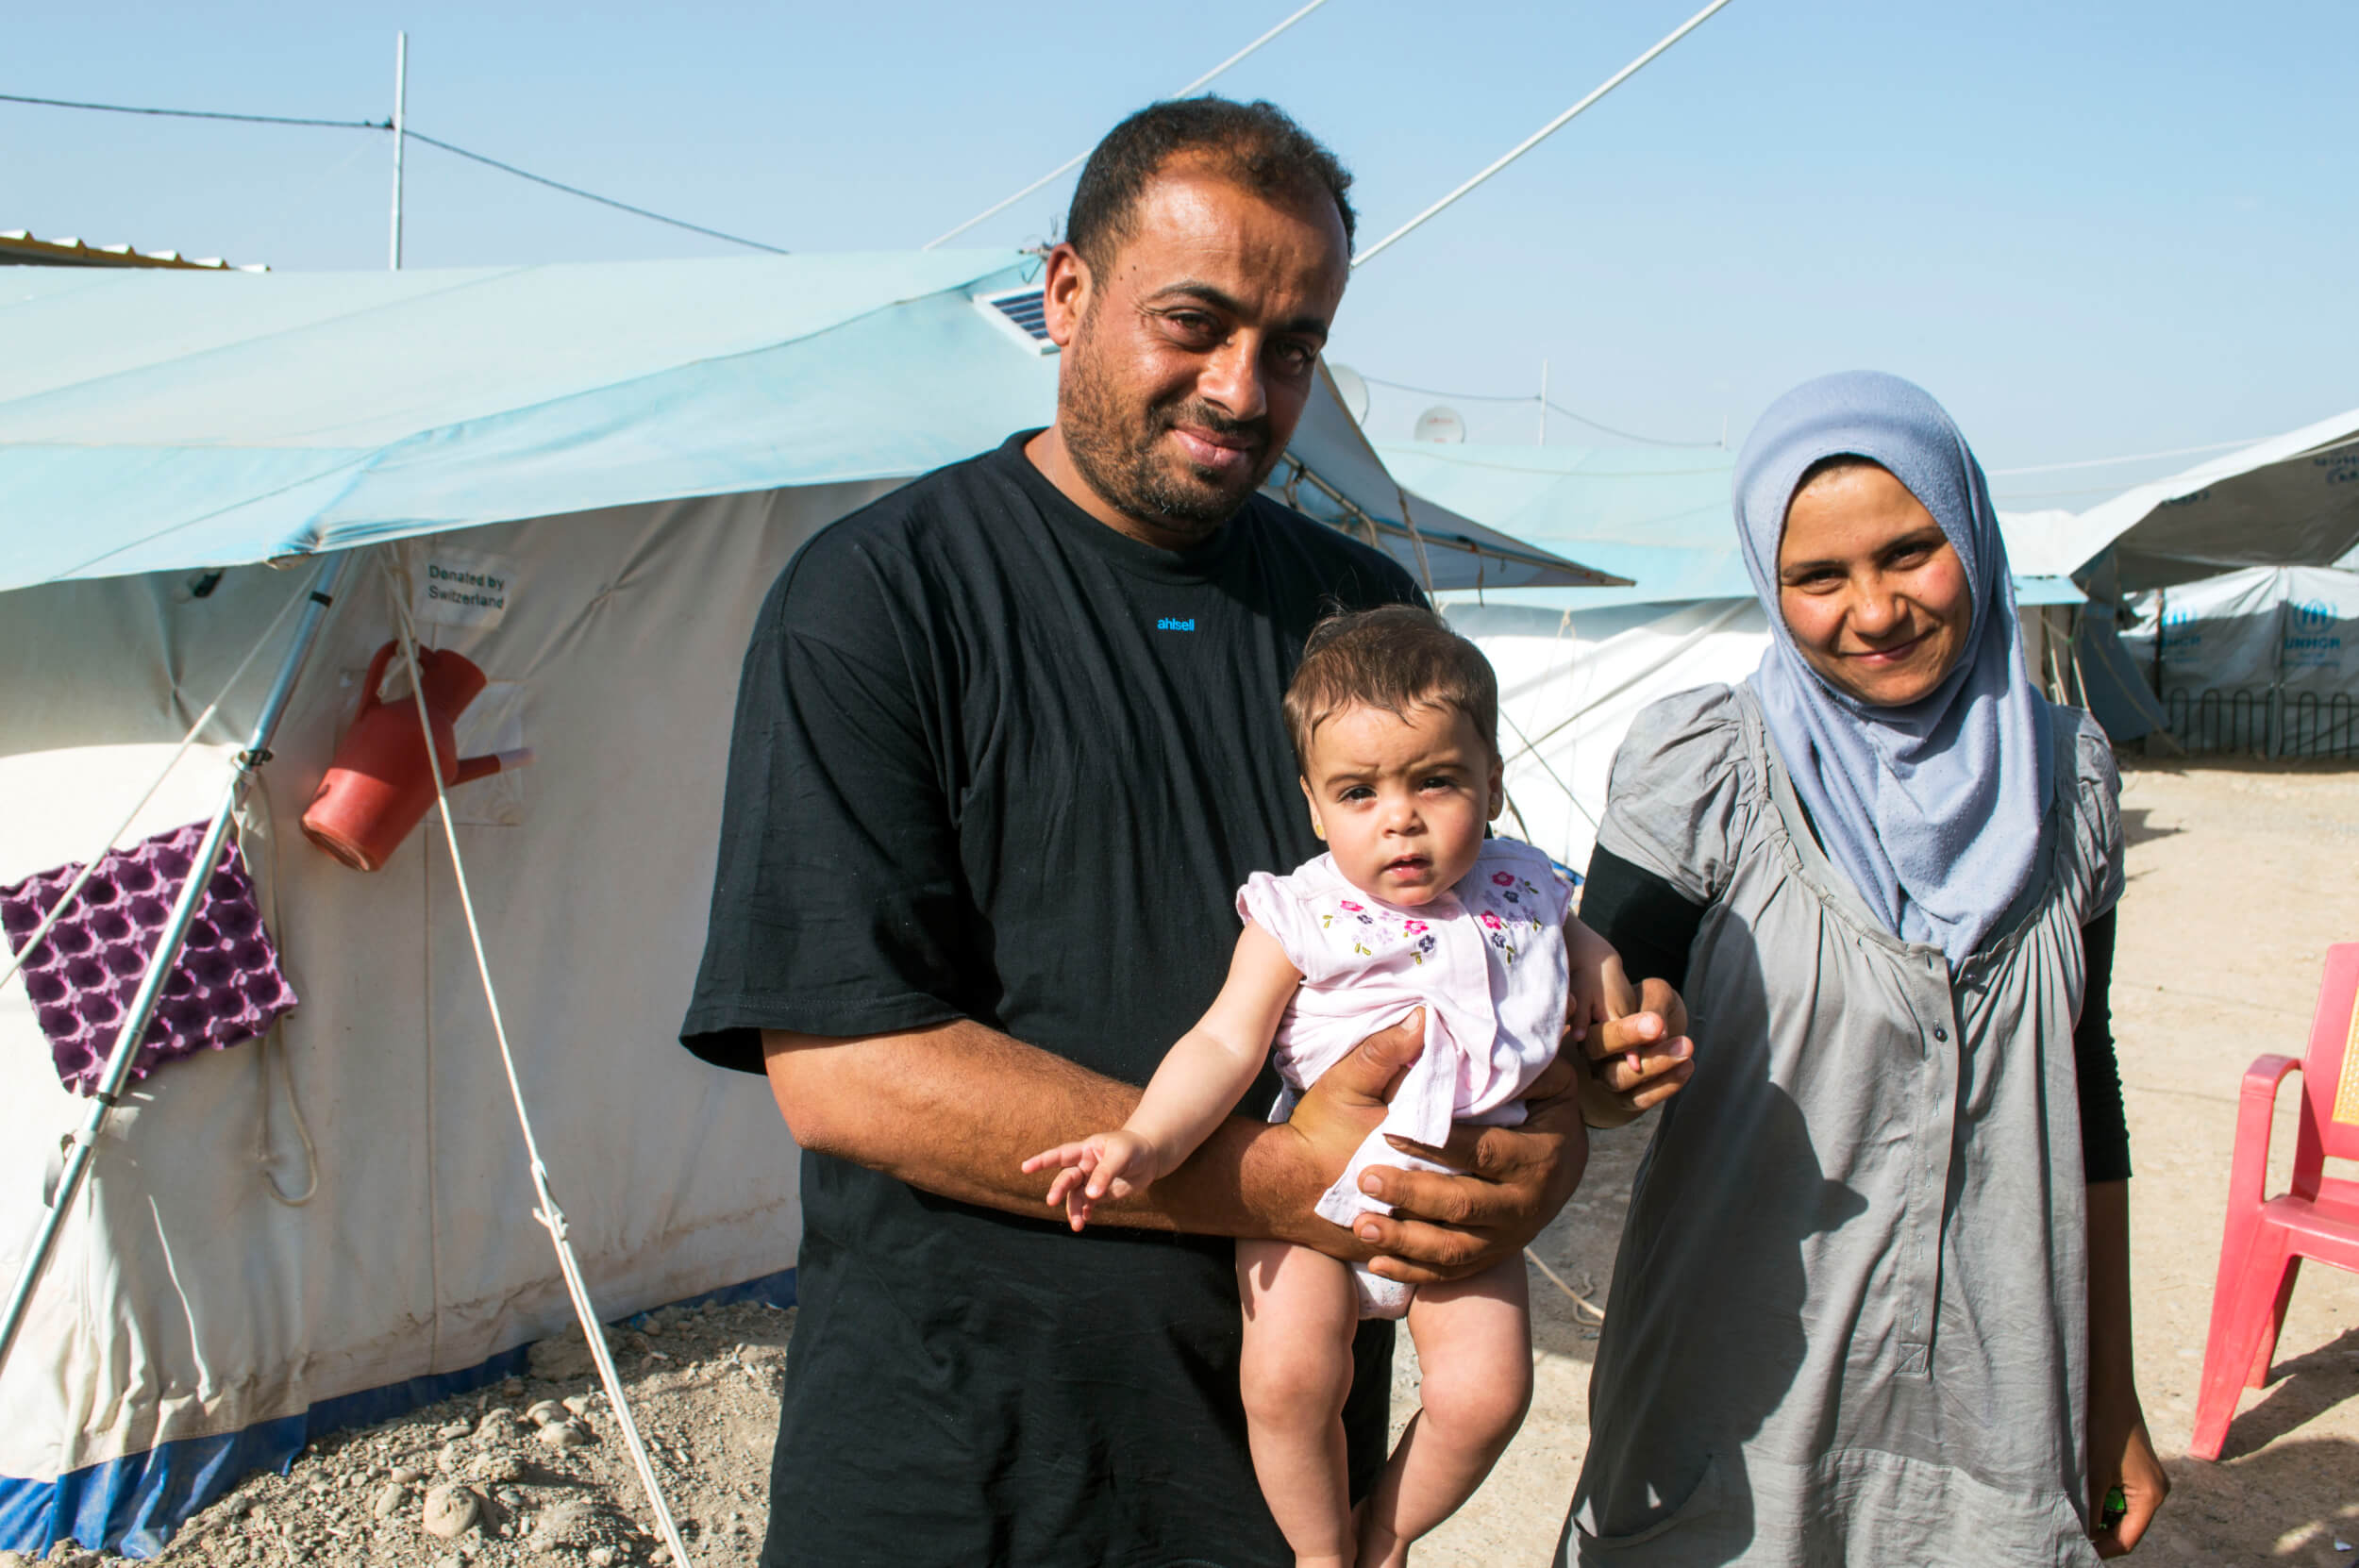 The Awad family stands outside, Haya the newest member is only six months old. Haya was born at Baharka. (Photo: Abed Al Qaisi)